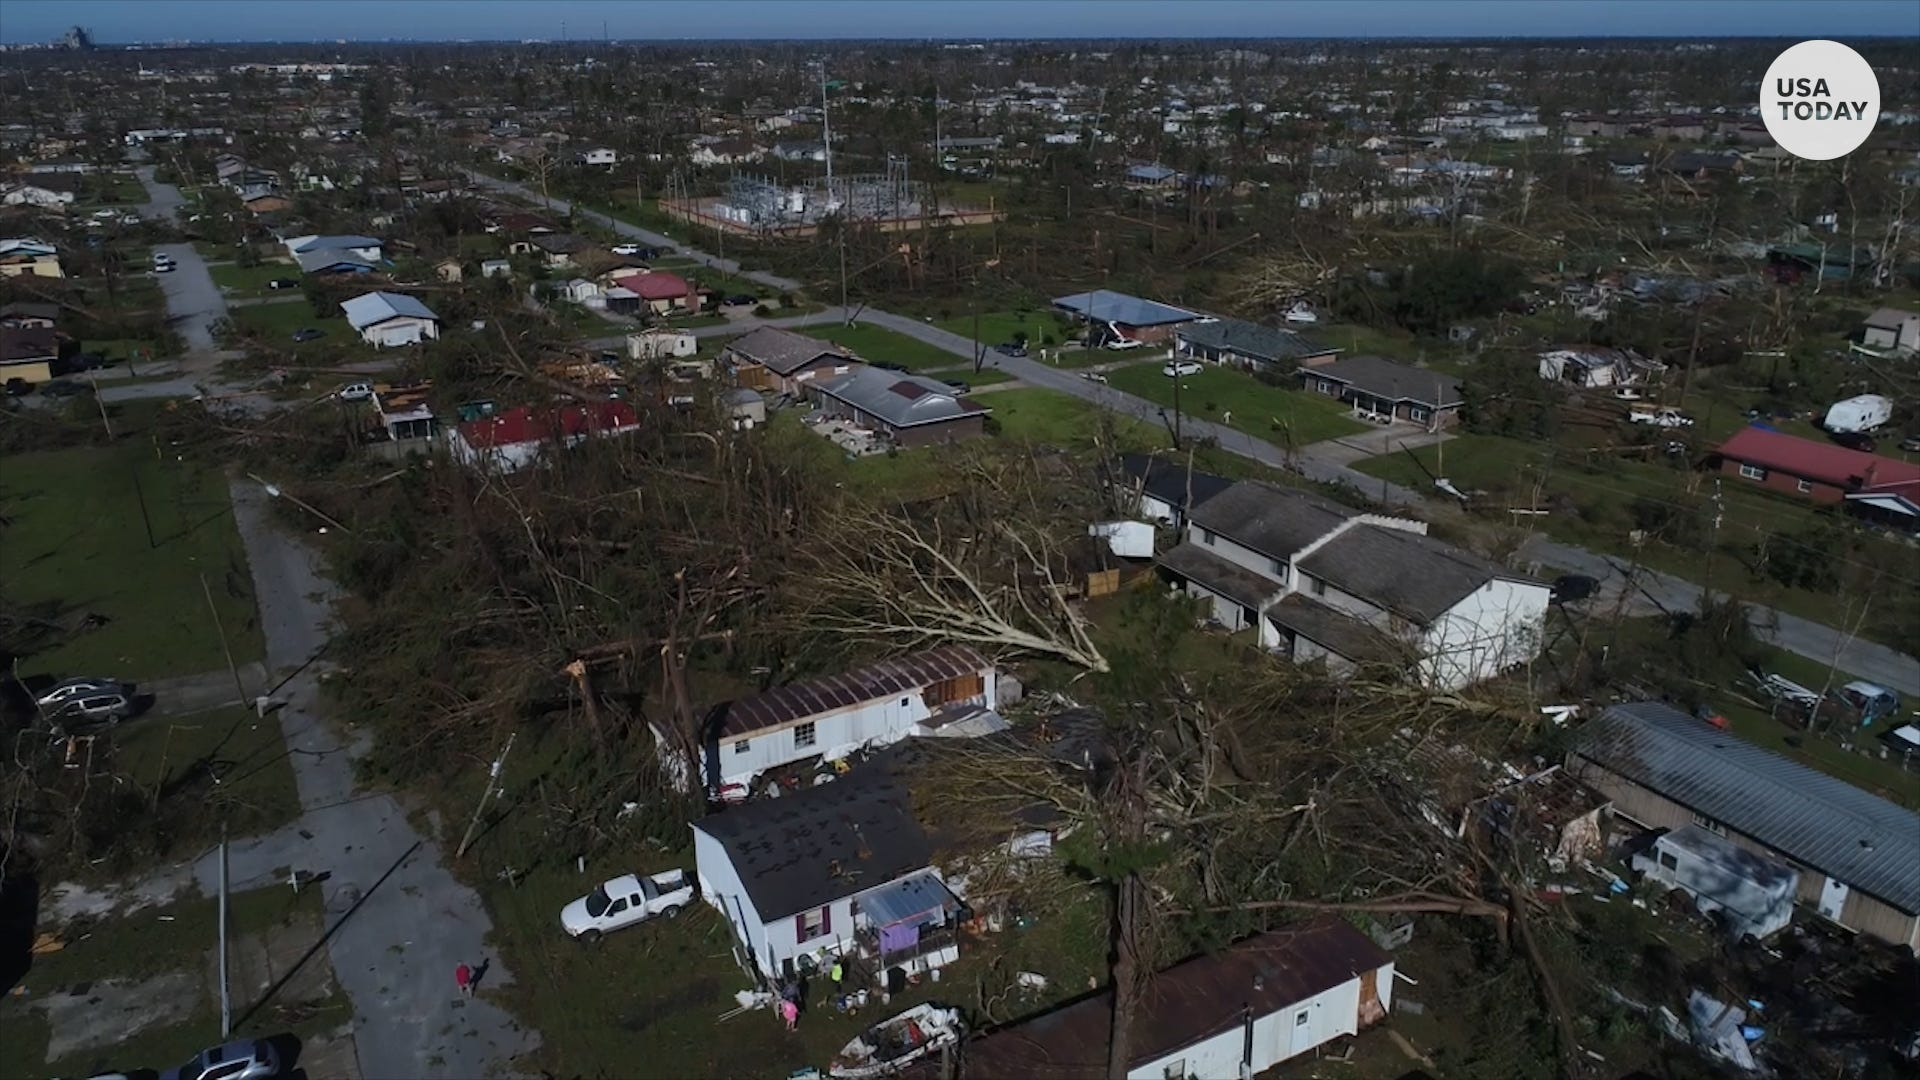 Hurricane Michael: Tyndall Air Force Base heavily damaged